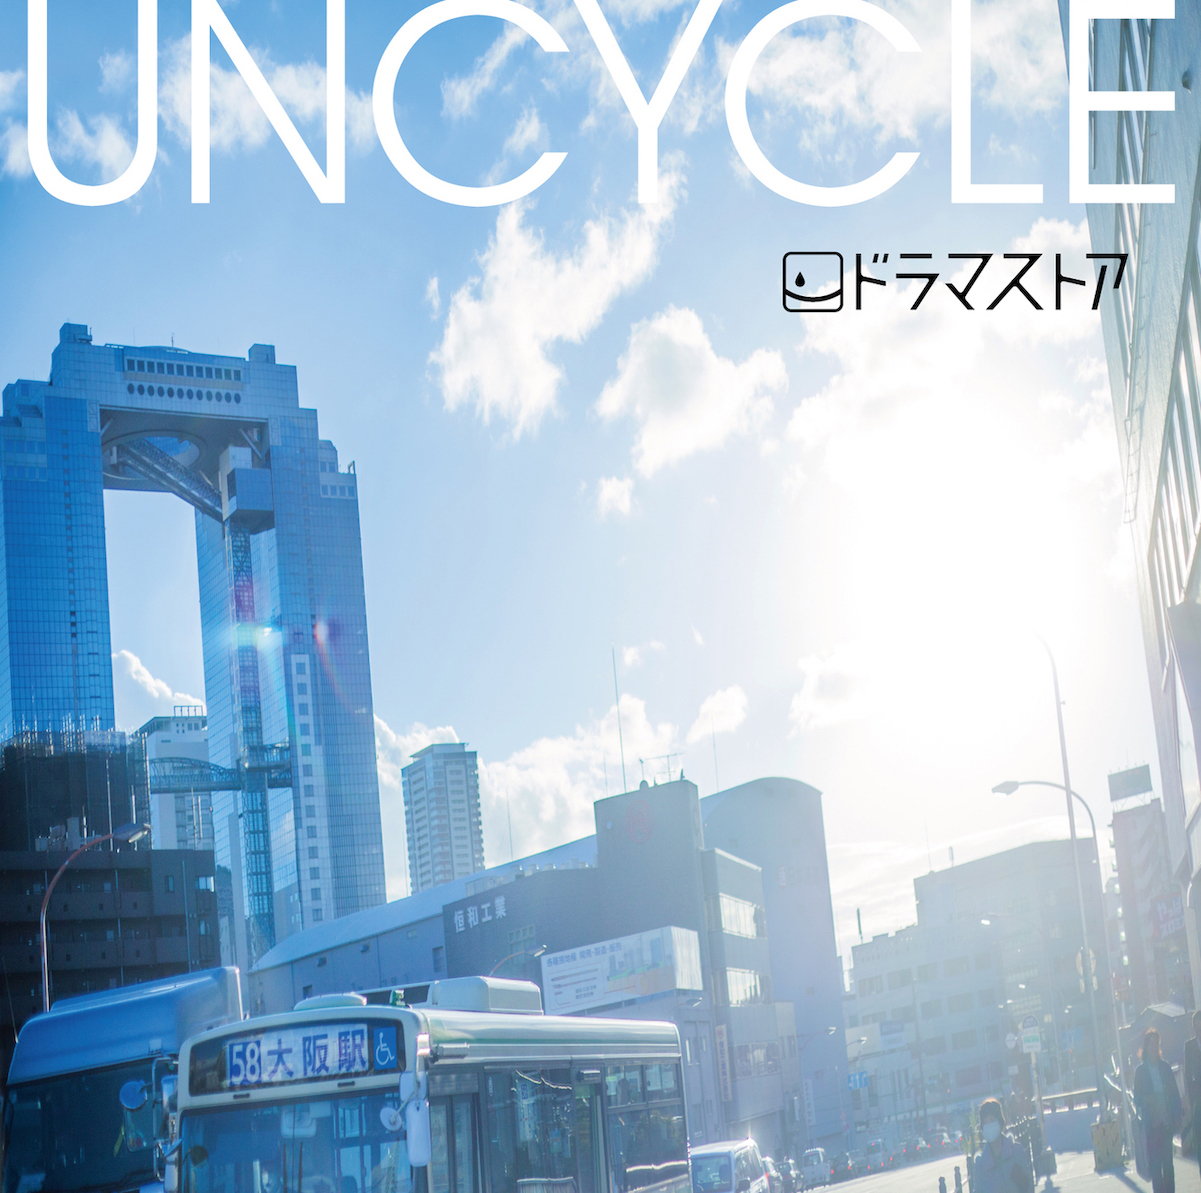 Uncycle